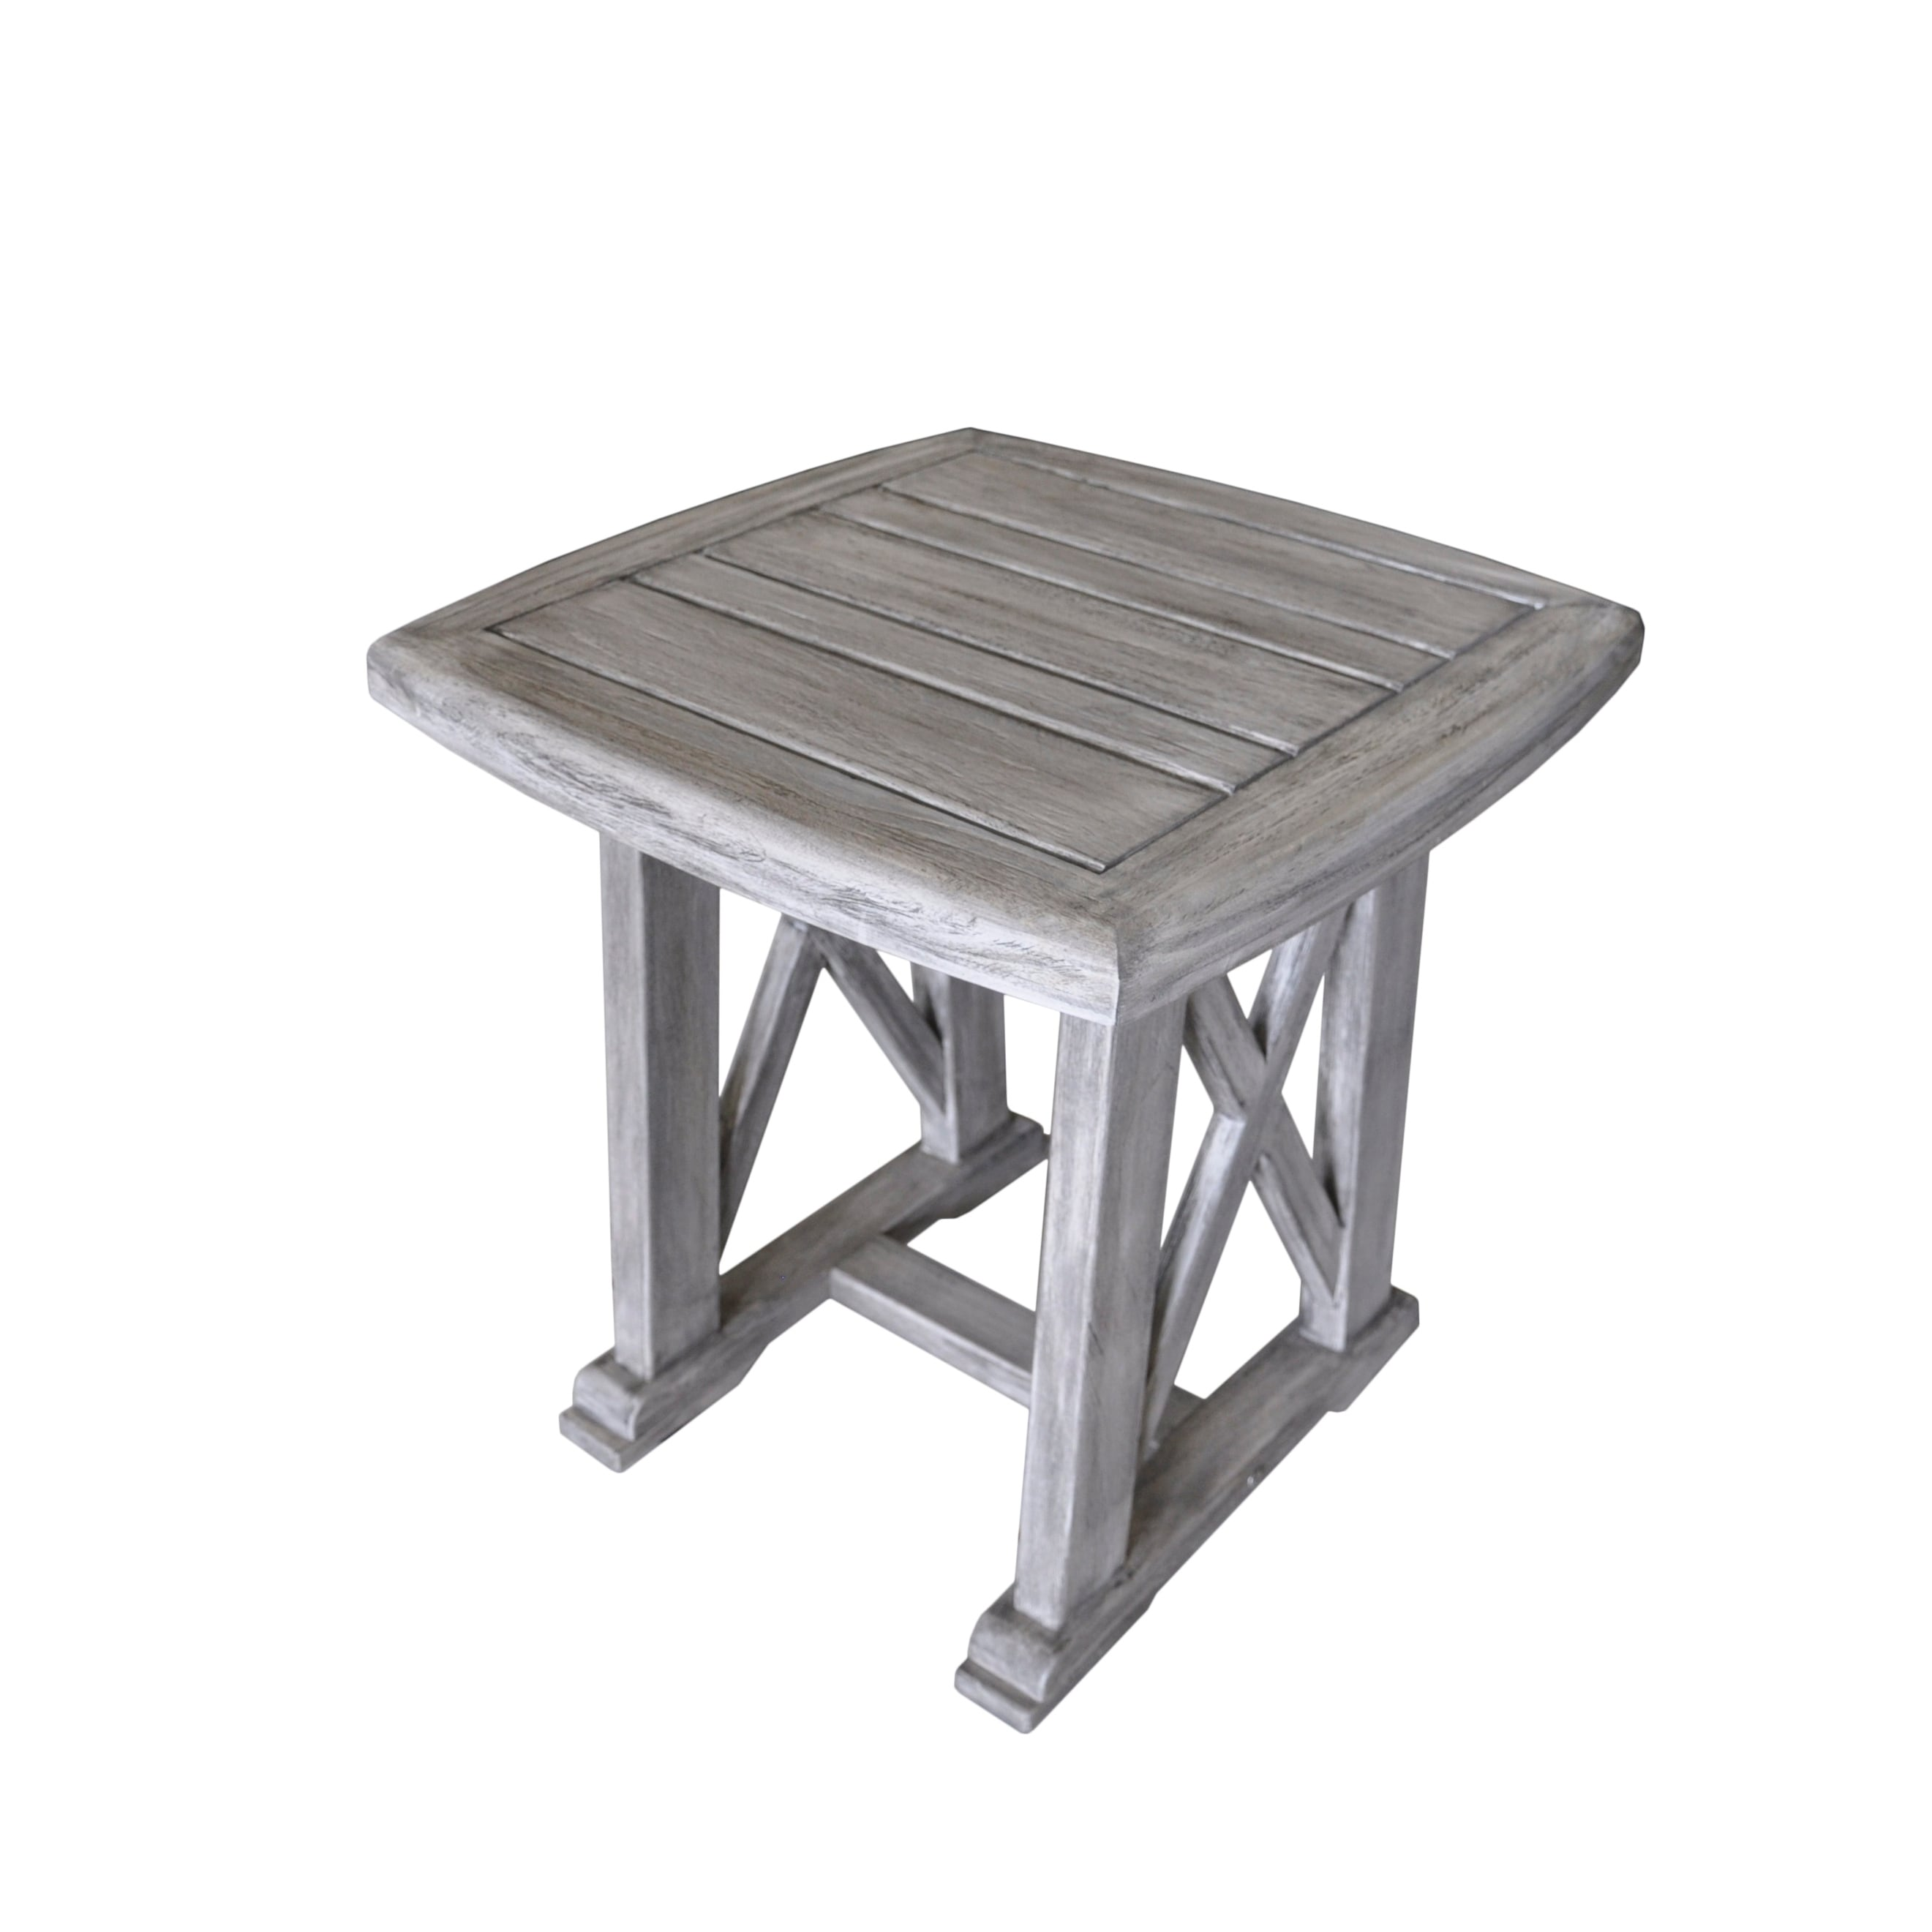 havenside home surfside driftwood grey teak deck end table courtyard casual gray surf side outdoor free shipping today small acrylic hallway furniture desk entry way waterproof